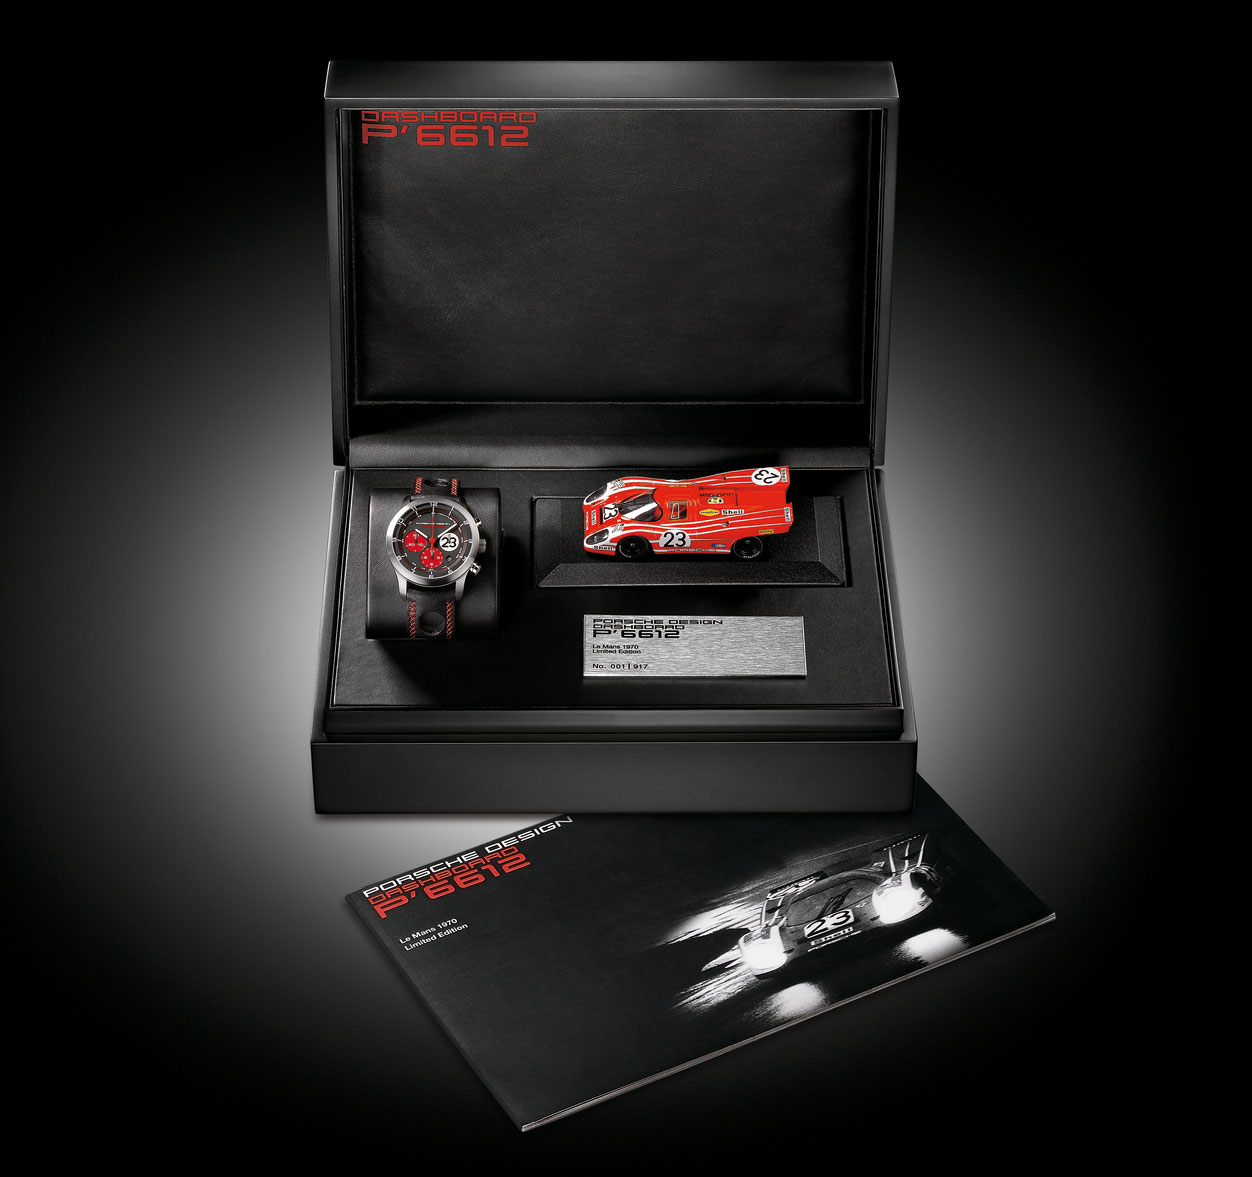 Porsche Design P6612 Dashboard Le Mans 1970 Watch &#8211; A tribute to Porsche&#8217;s first overall victory at Le Mans